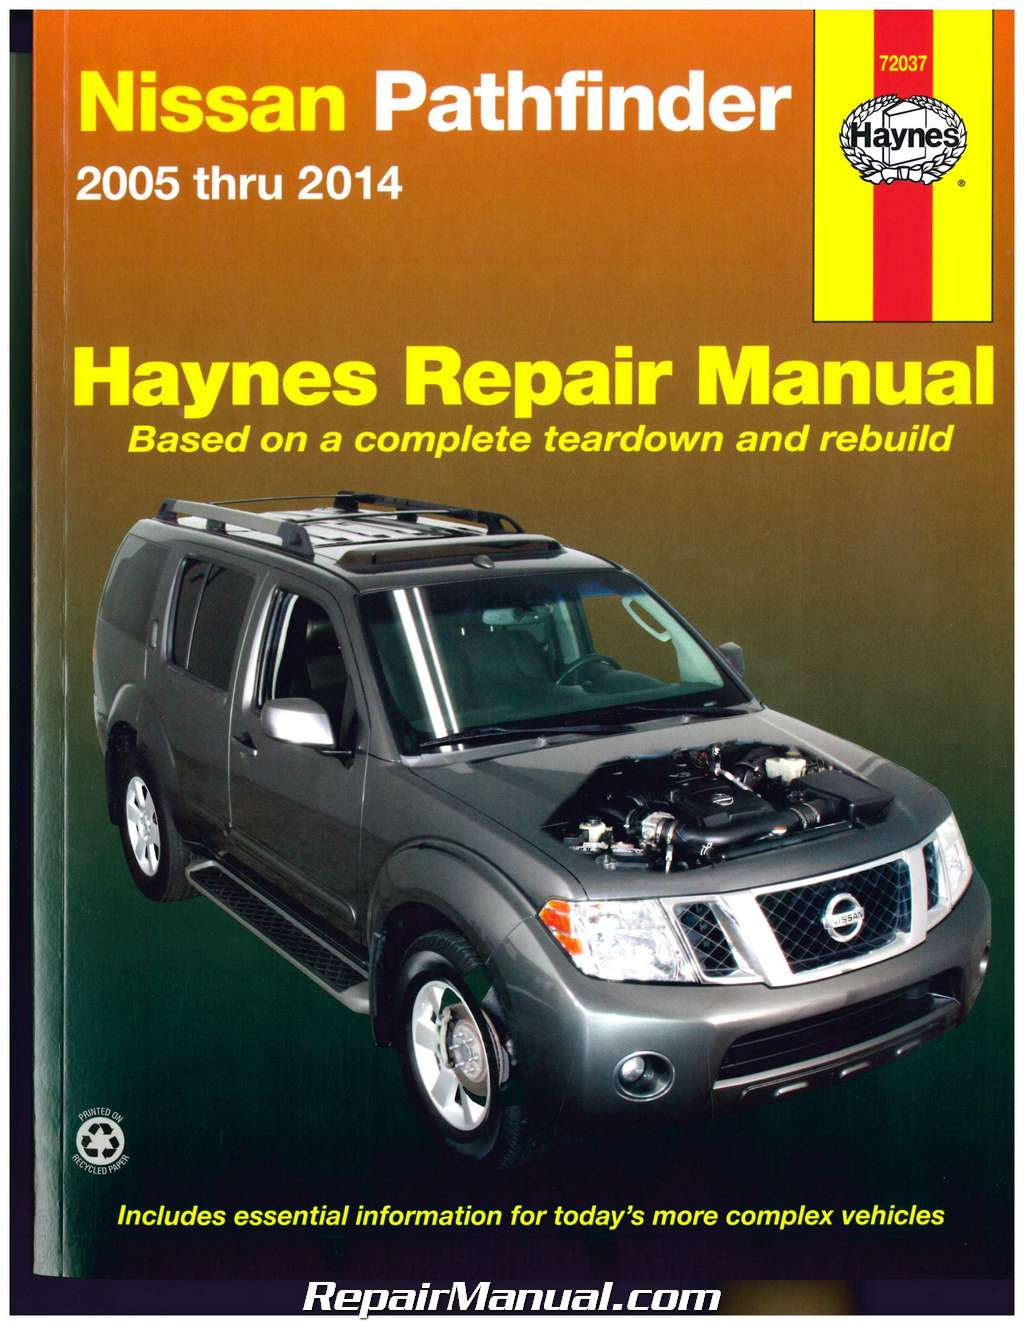 2012 Nissan Pathfinder For Sale >> Nissan Pathfinder 2005-2014 Haynes SUV Repair Manual